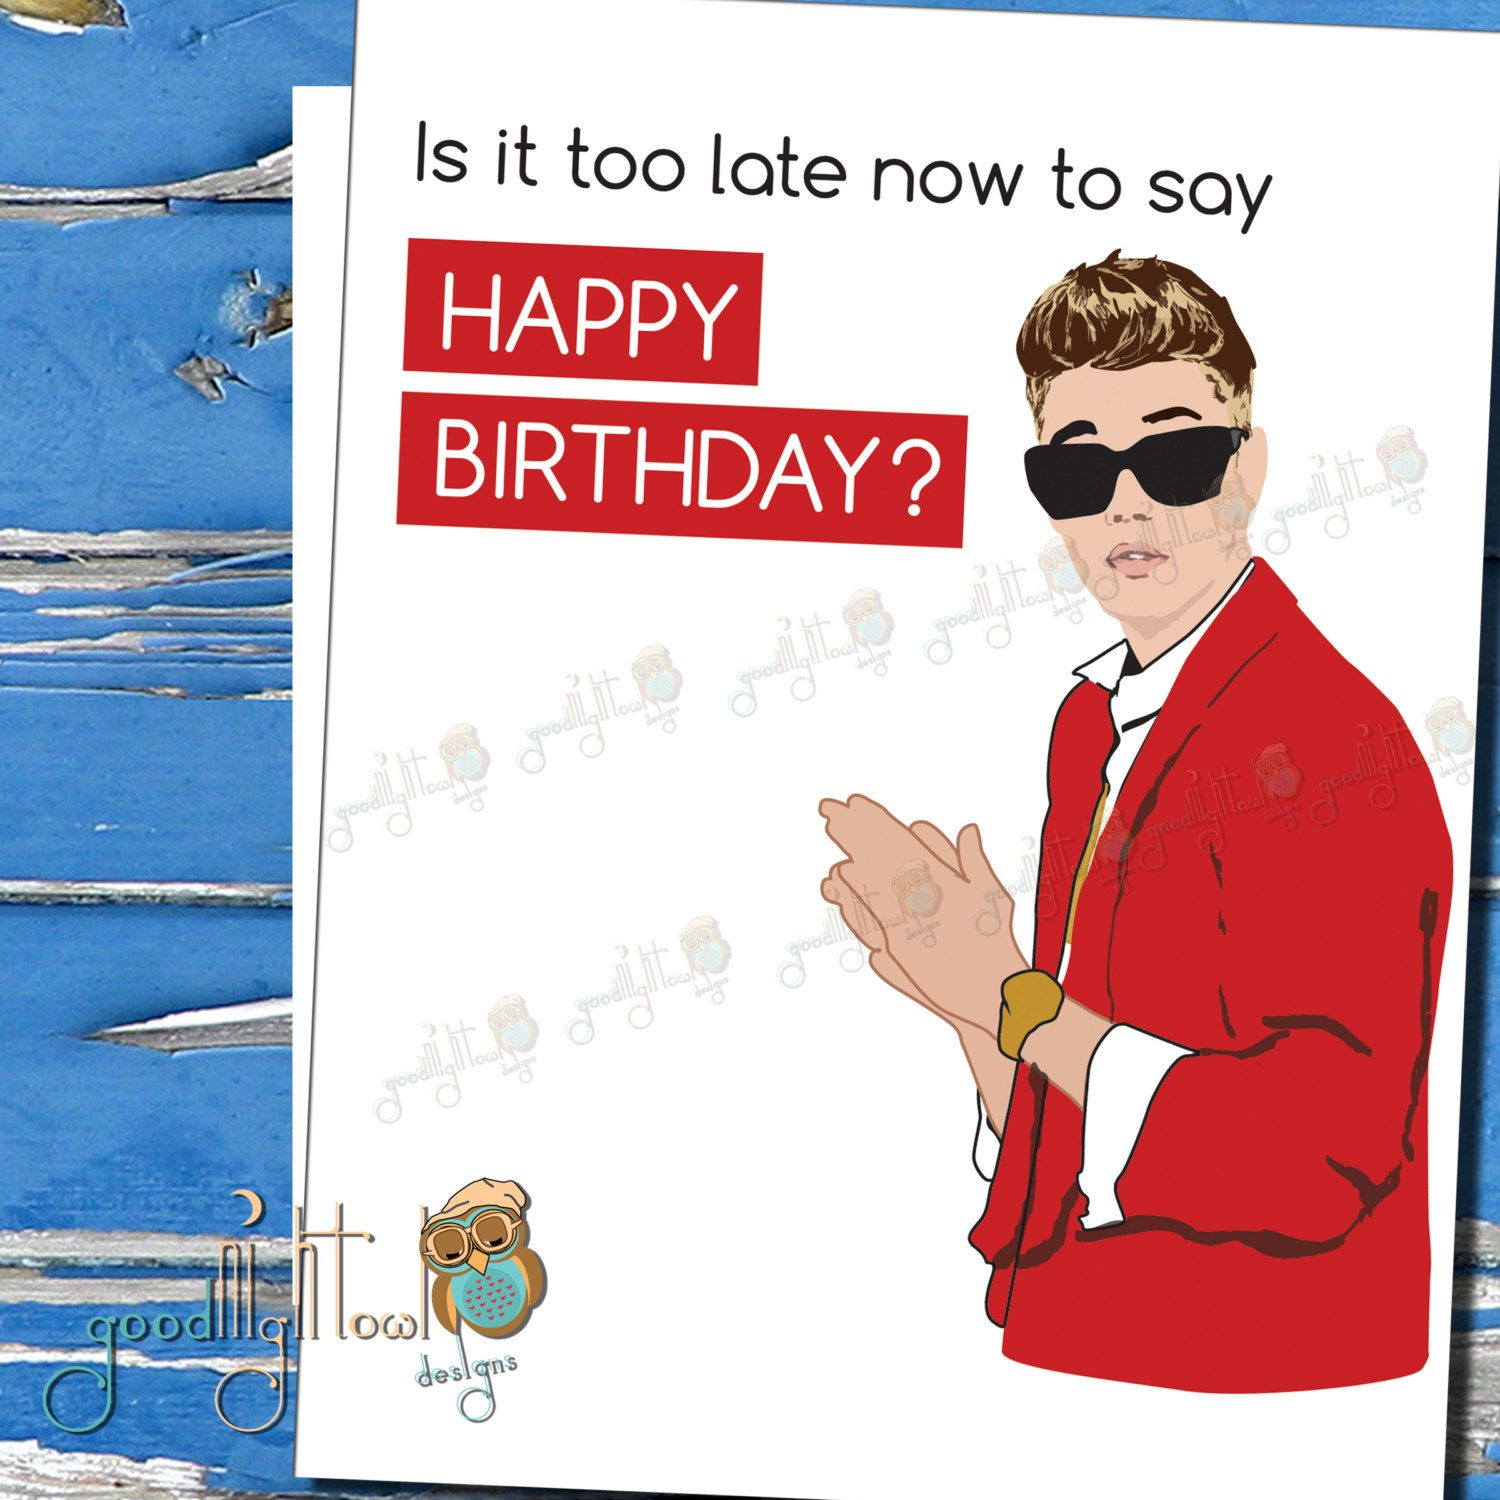 Funny Belated Birthday Card Justin Bieber Is it too late now to – What to Say in a Birthday Card